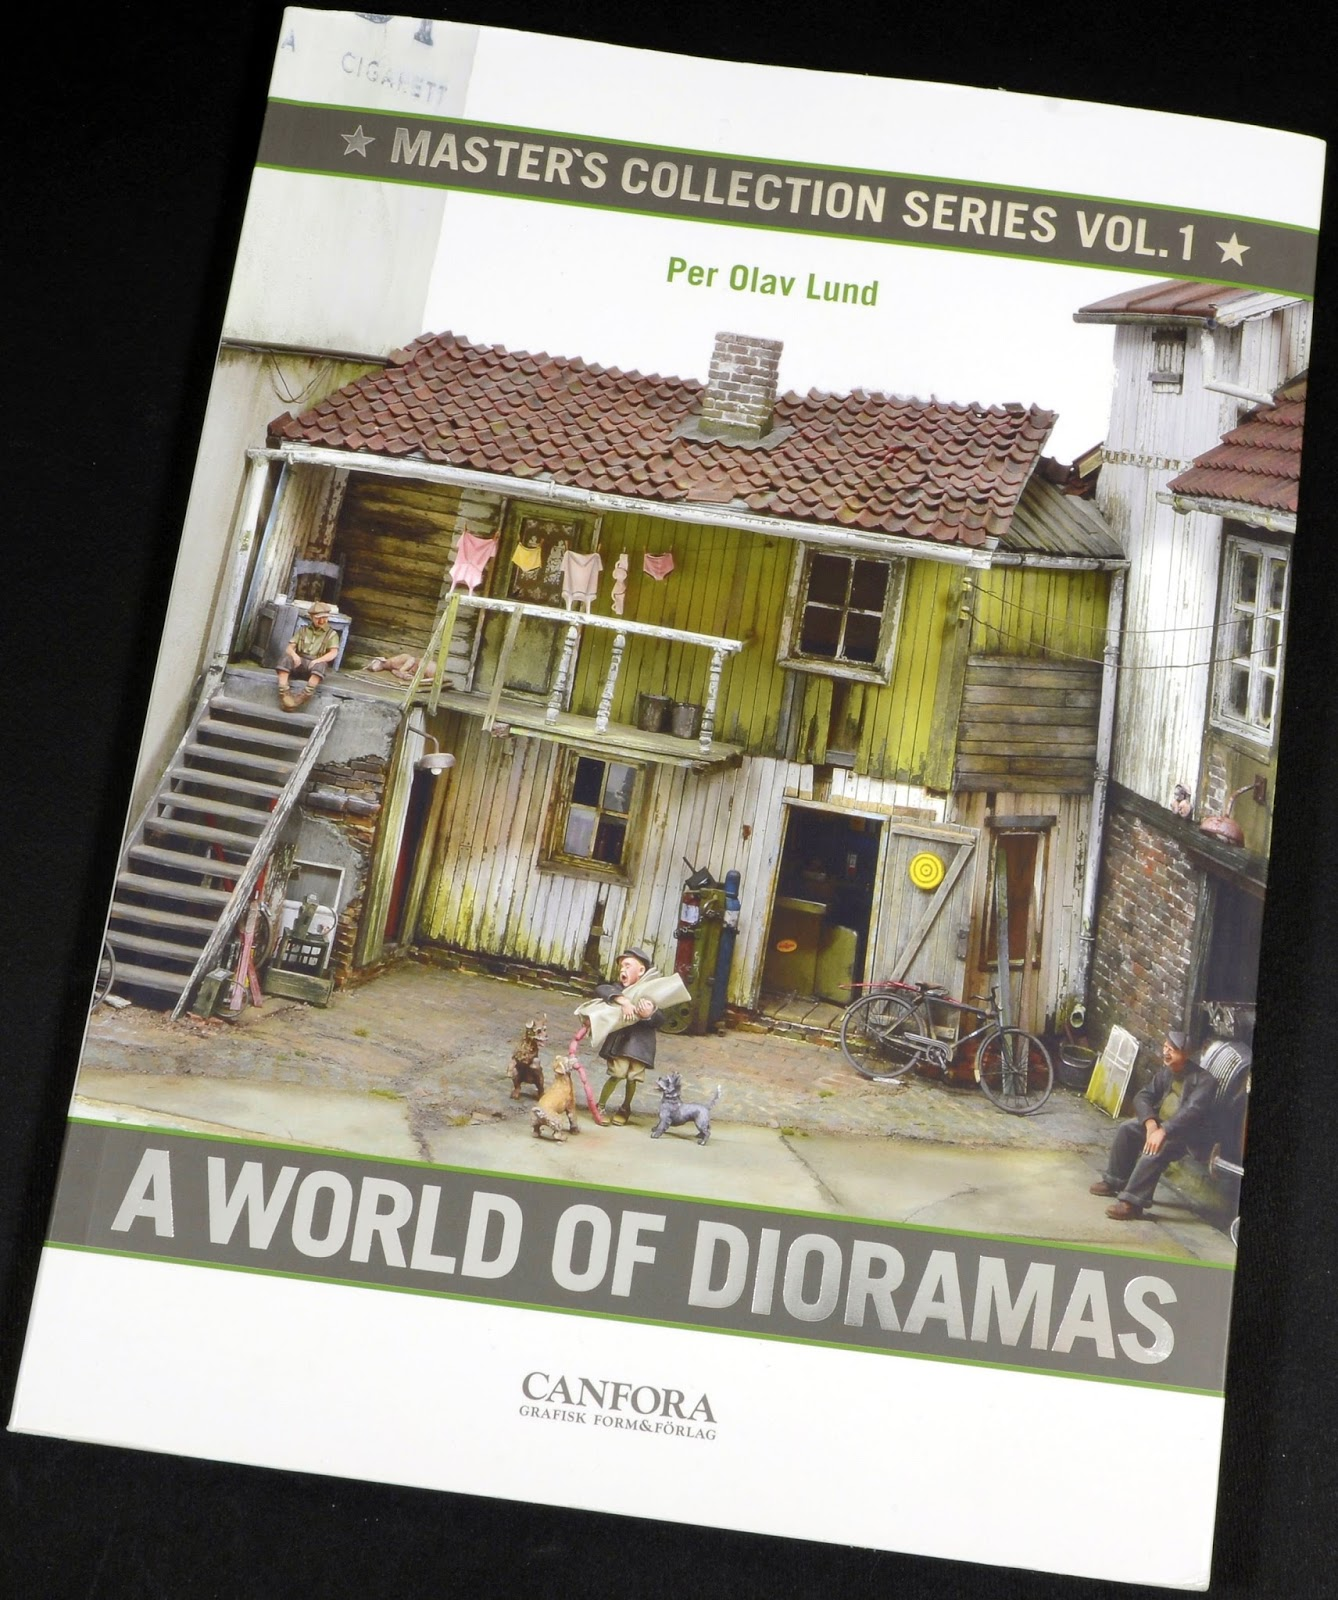 Review: World of Dioramas by Per Olav Lund: Vol I